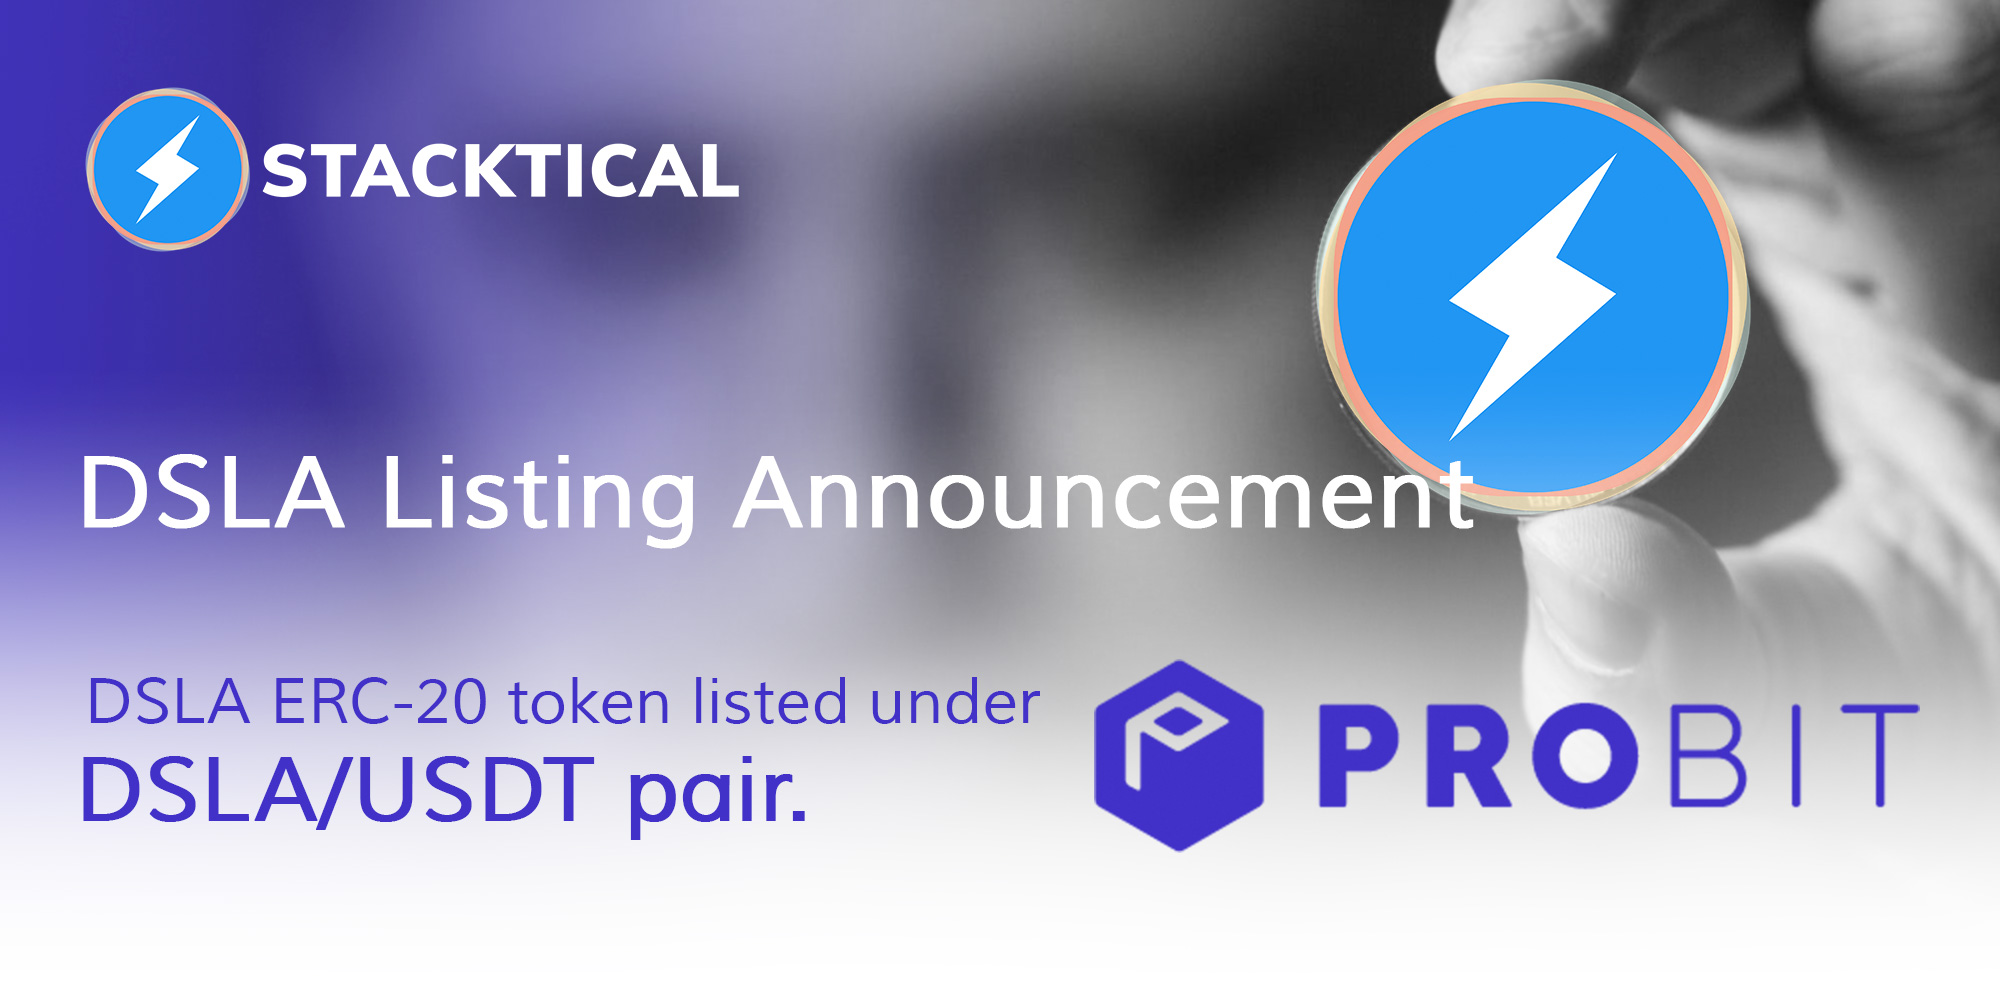 DSLA/USDT debuts trading on ProBit